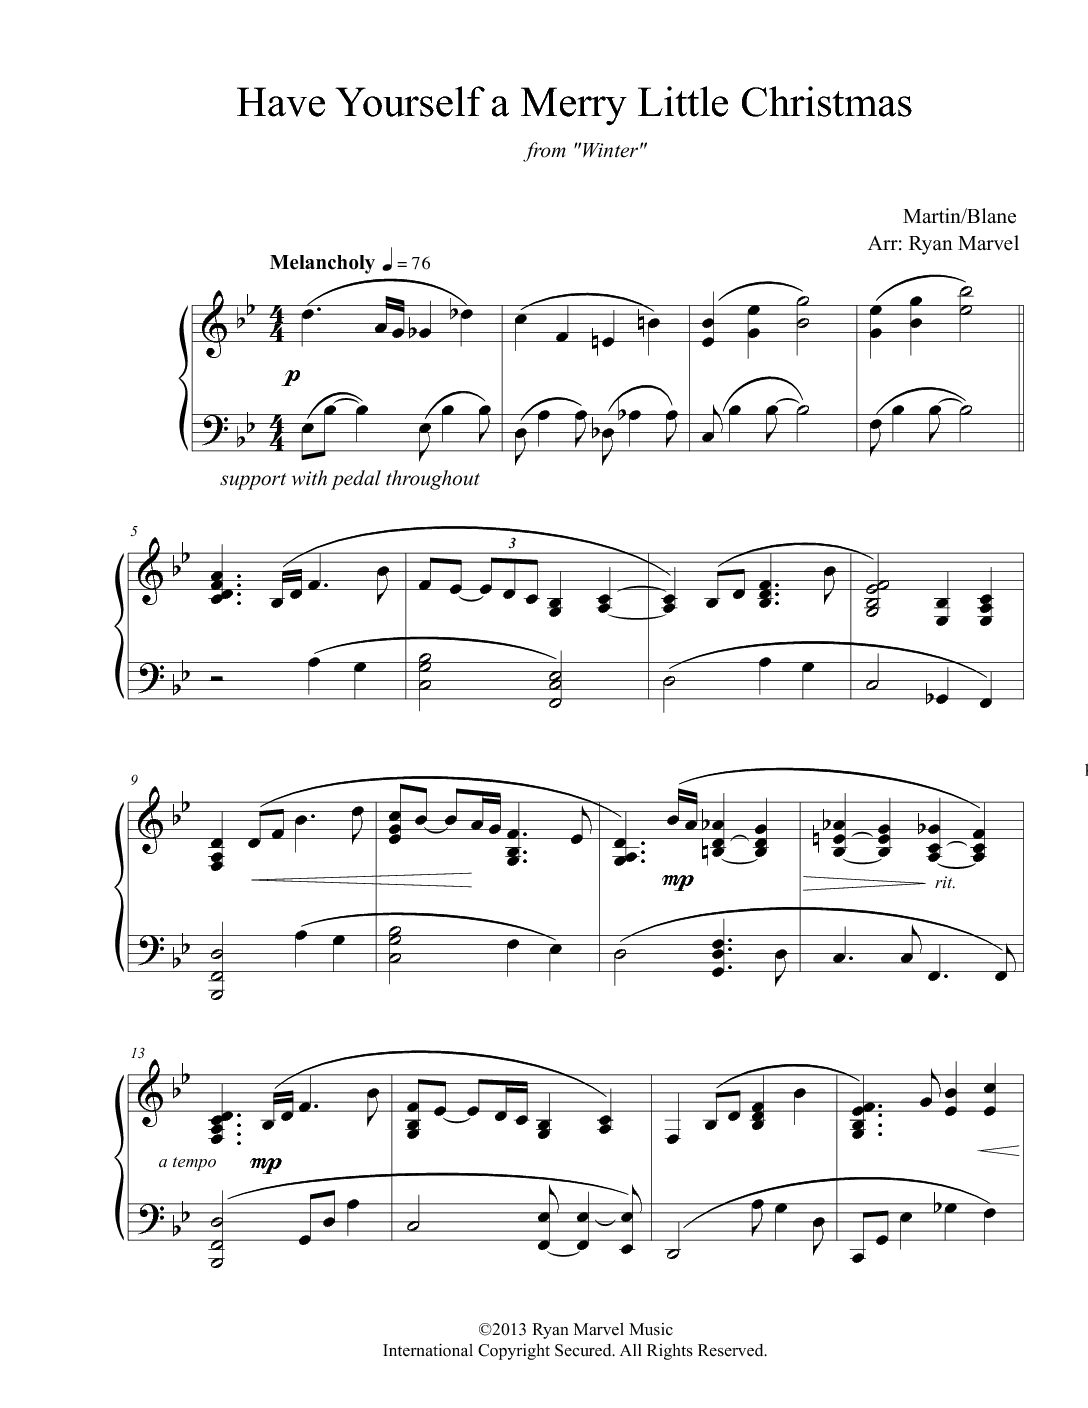 Have Yourself A Merry Little Christmas Chords.Sheet Music Downloads Ryan Marvel